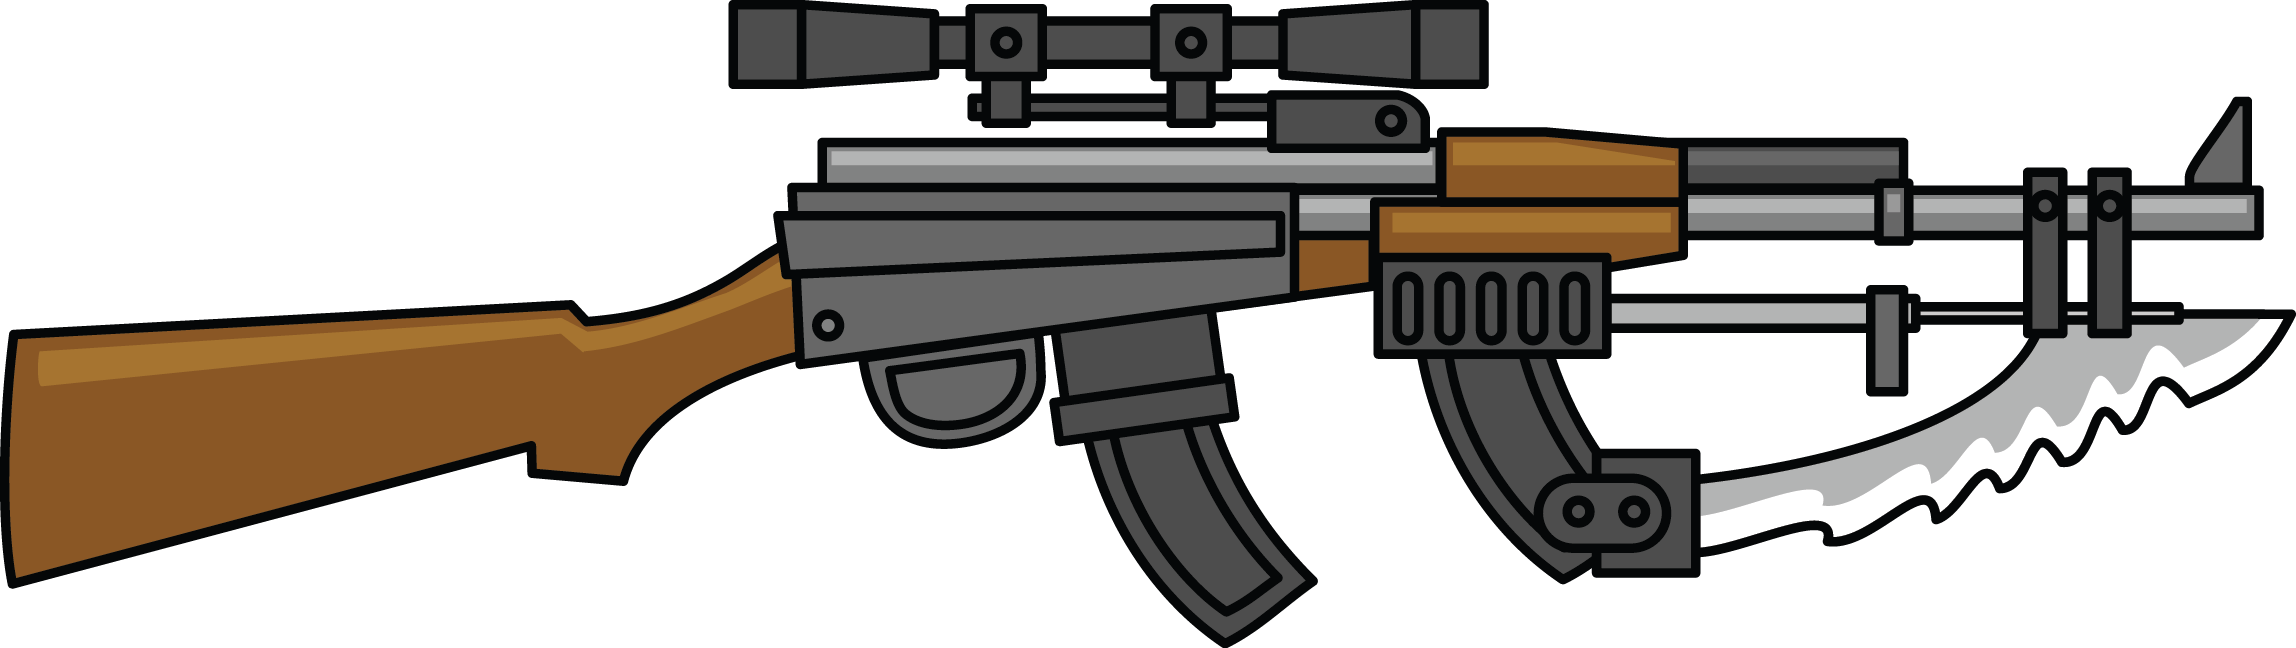 Shotgun clipart hammerless Art Public to Blade Use